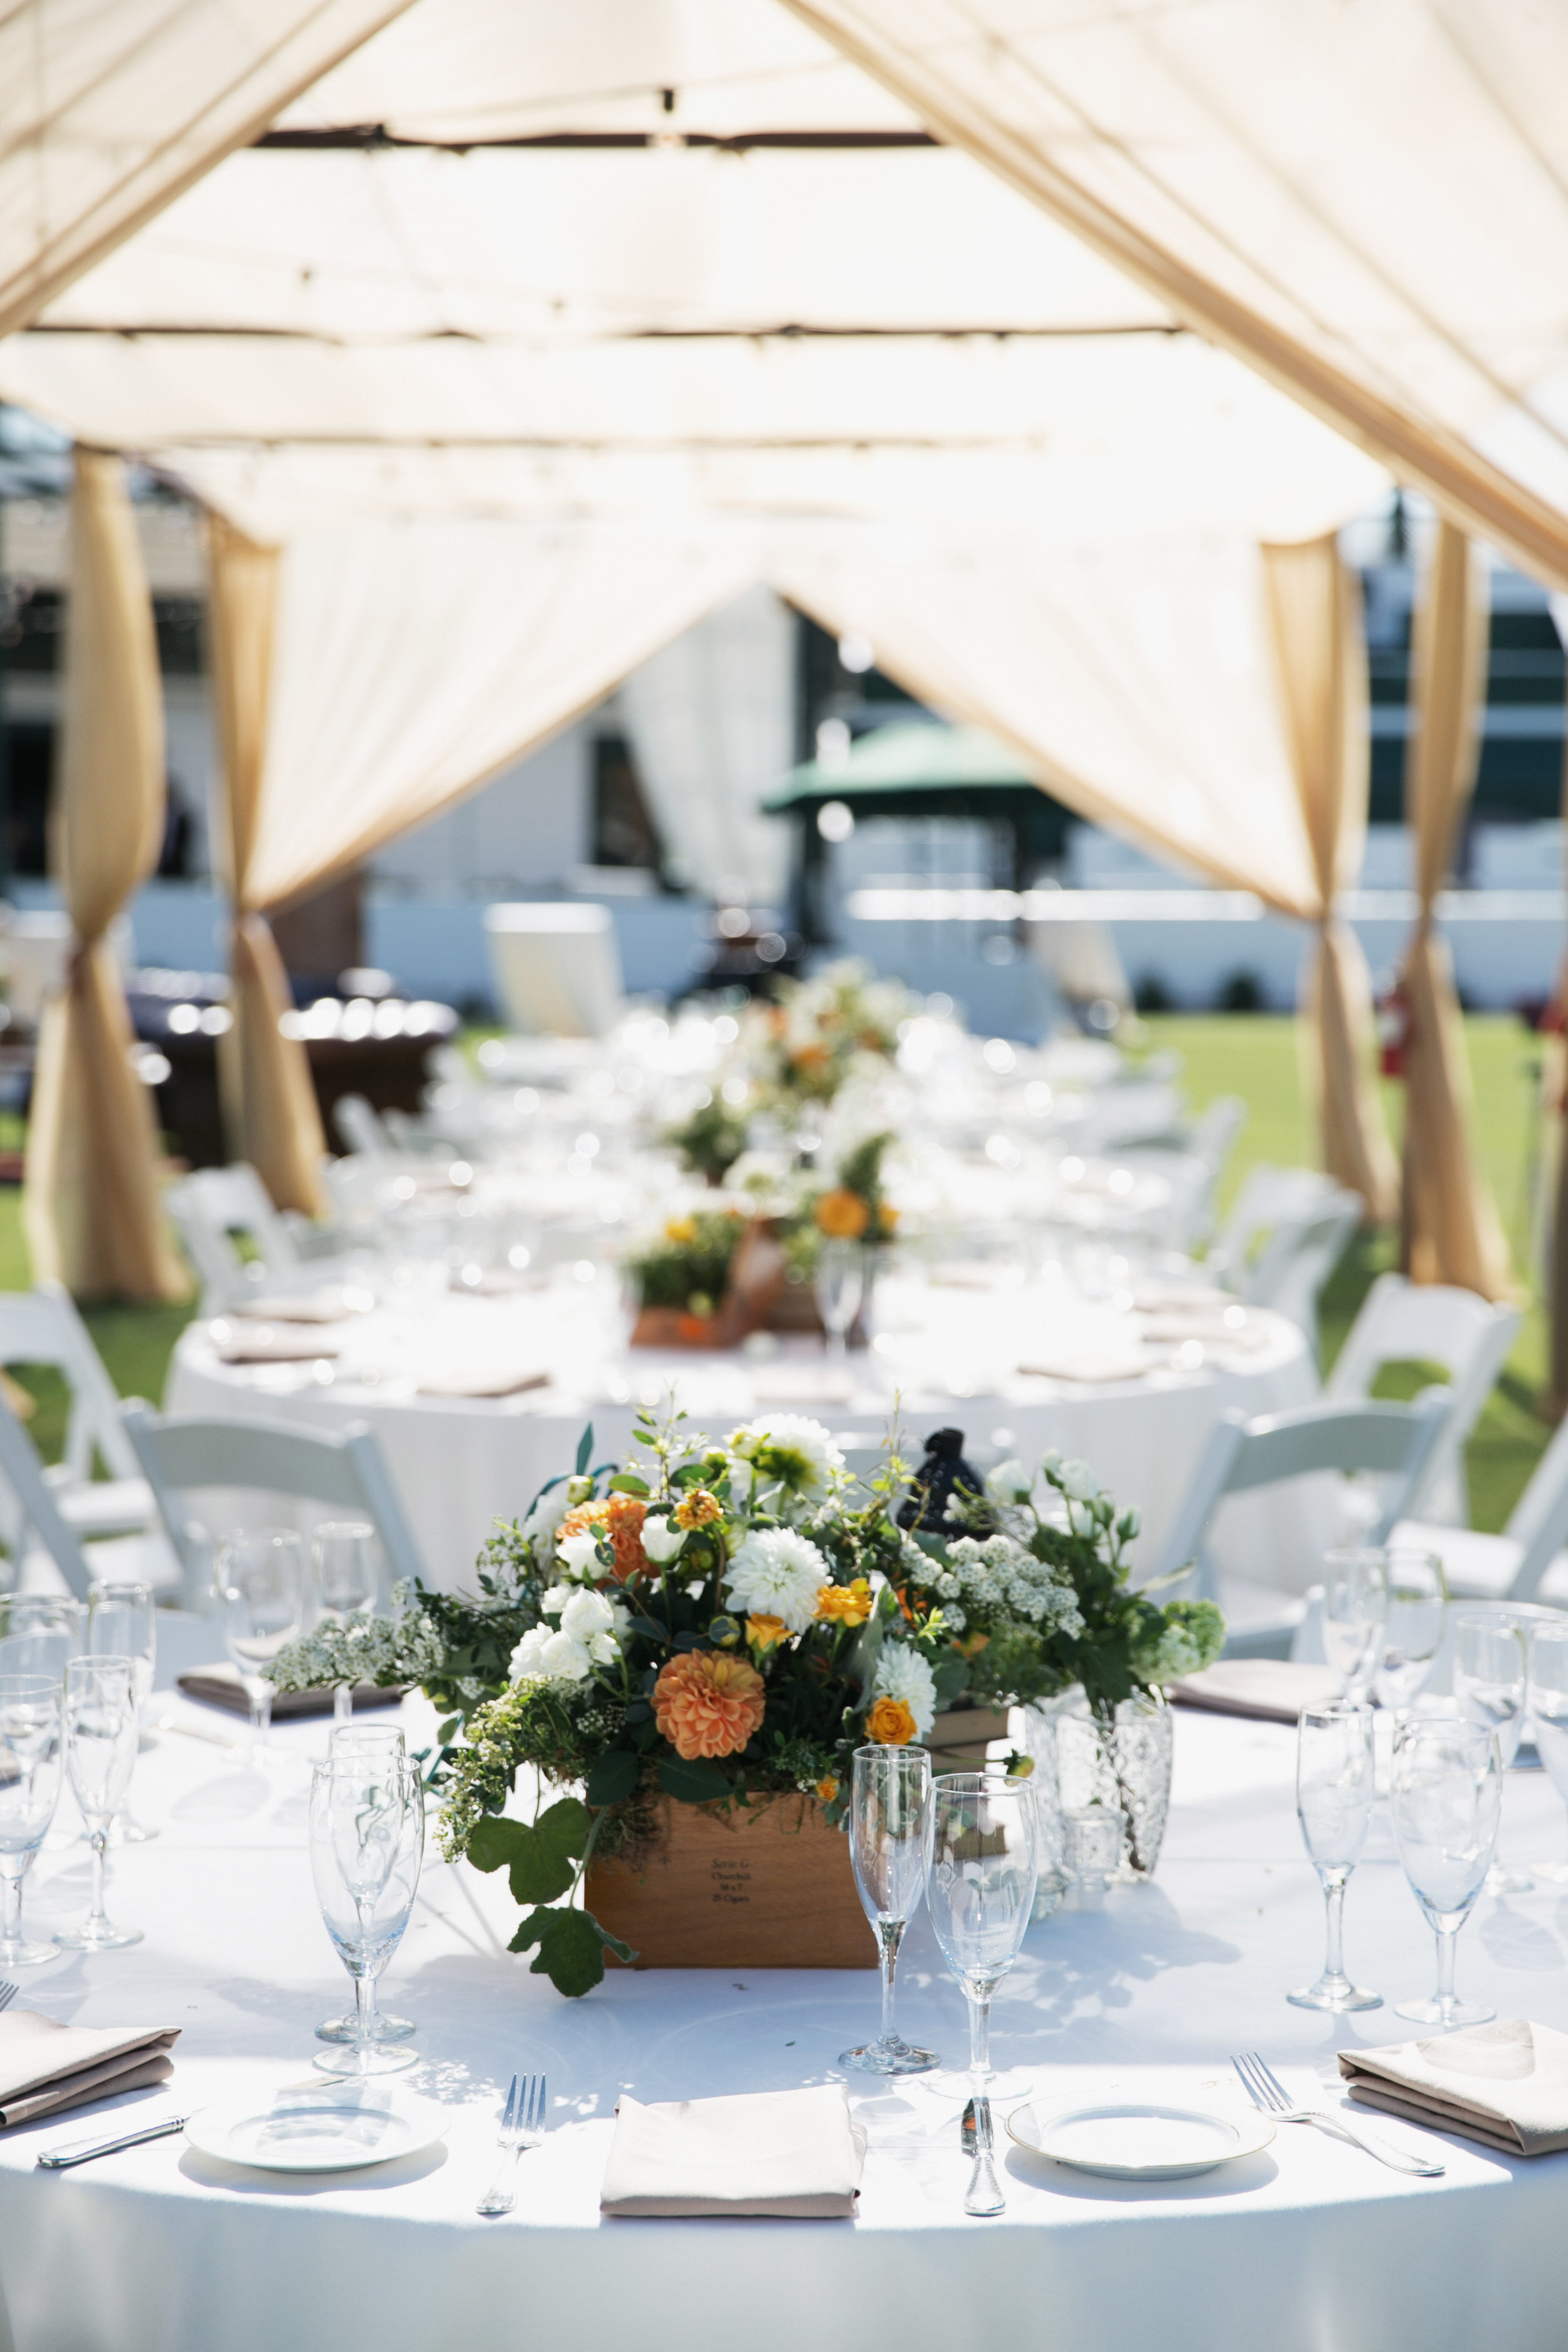 Santa Barbara Polo Club tented reception details